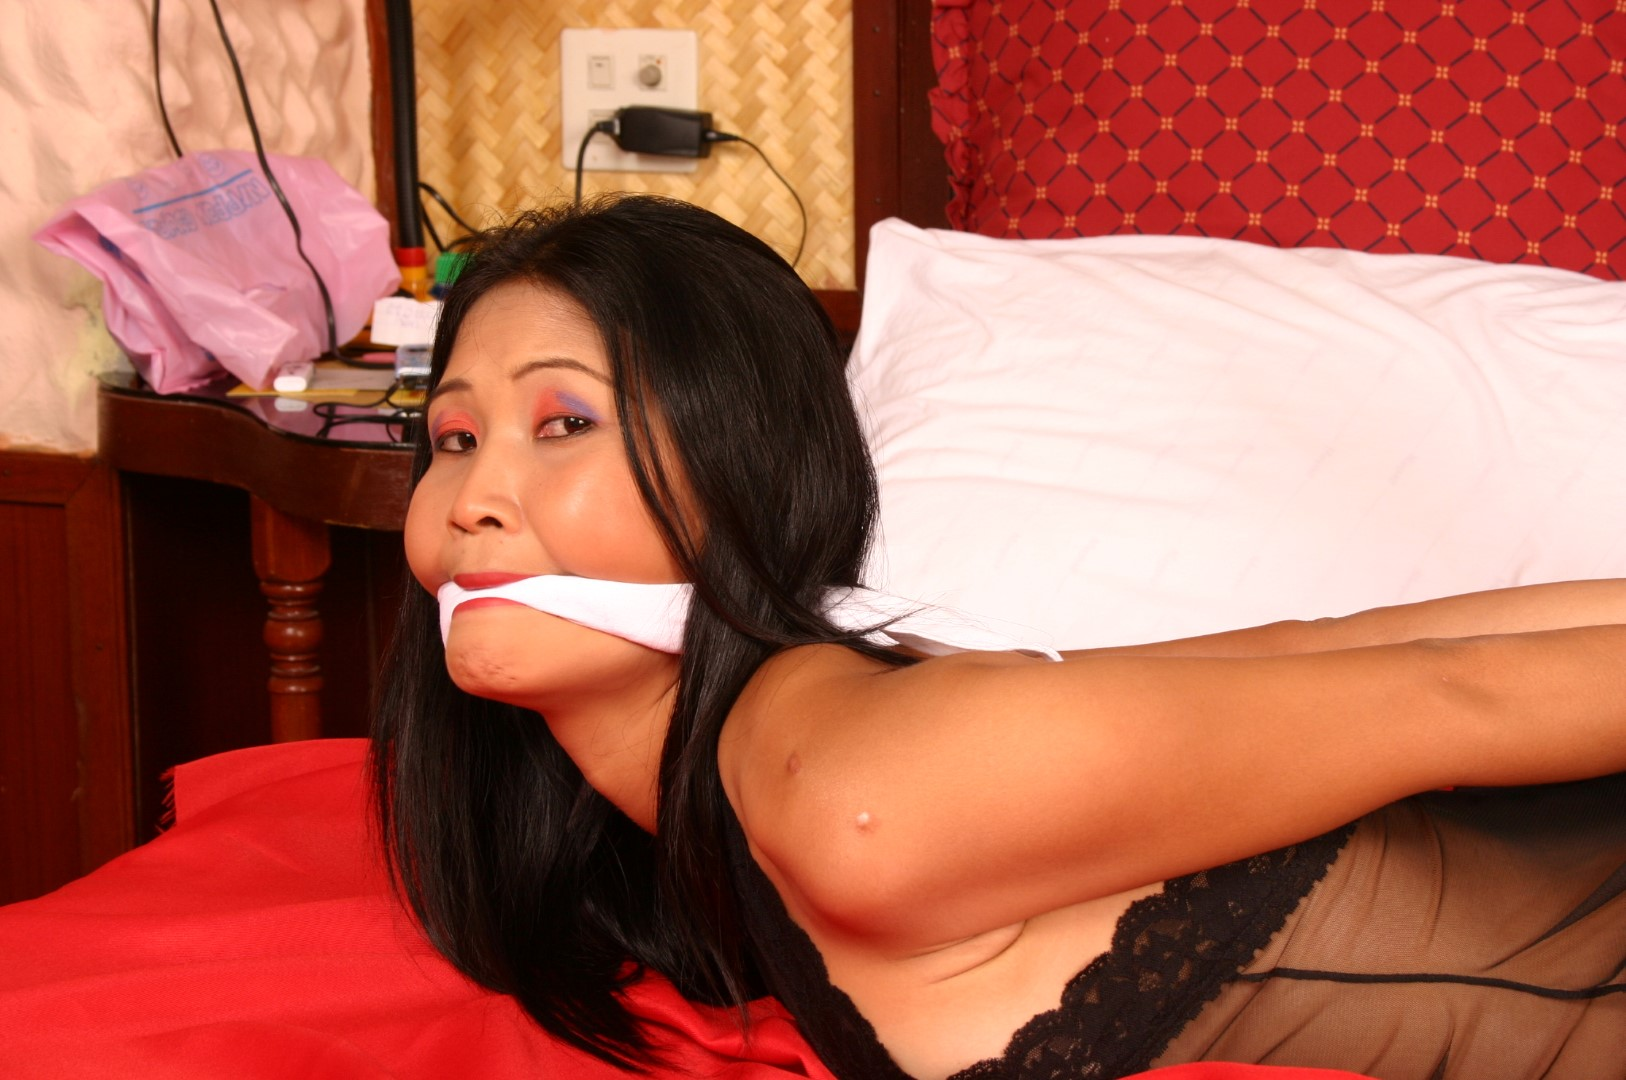 Asian women gagged and hogtied